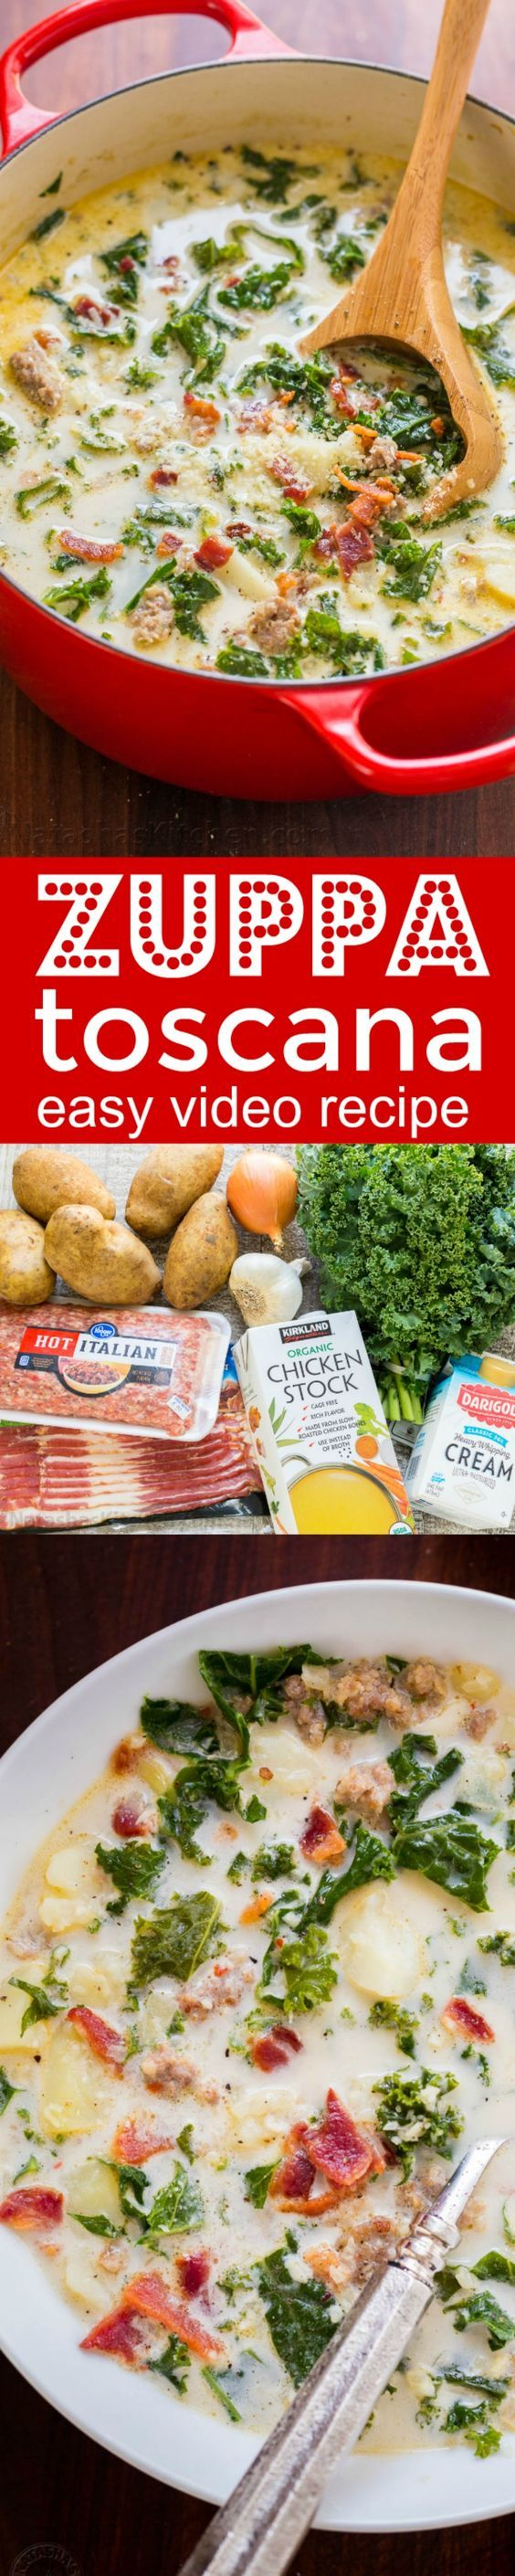 One-Pot Zuppa Toscana Recipe - a family favorite for years! Watch how-to VIDEO for our copycat version of Olive Garden's most popular Zuppa Toscana soup.   natashaskitchen.com